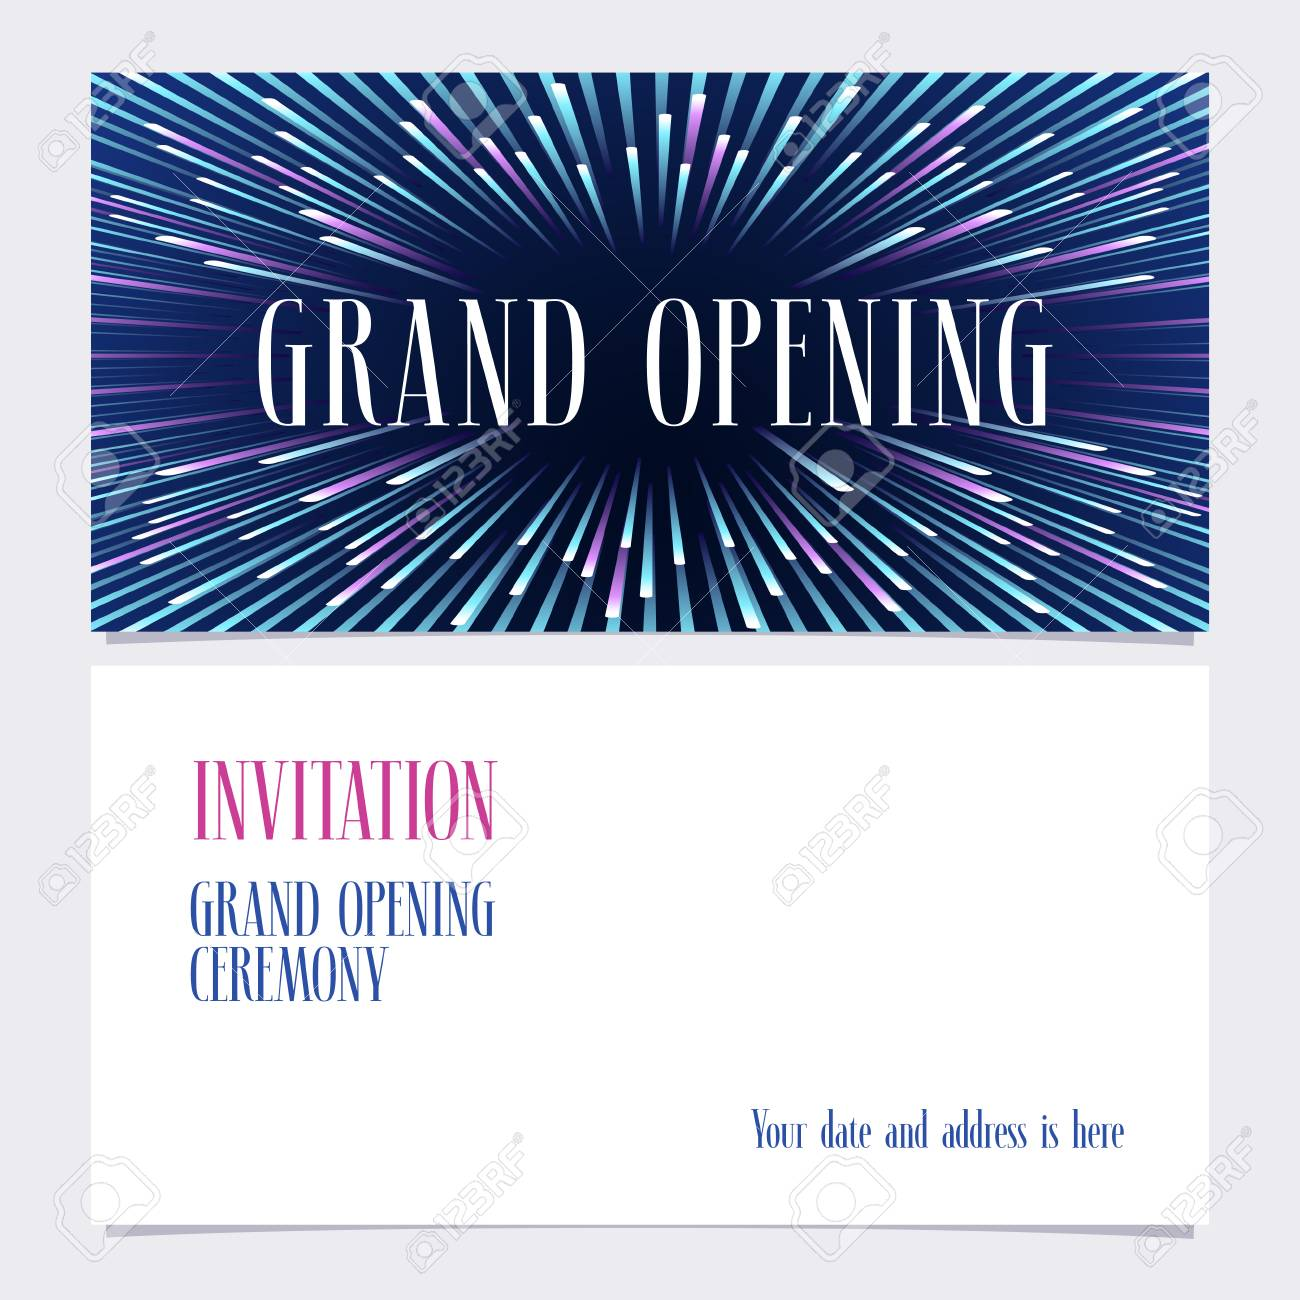 Grand opening vector illustration invitation card for new store banco de imagens grand opening vector illustration invitation card for new store with bright background template banner invite design for opening event stopboris Image collections